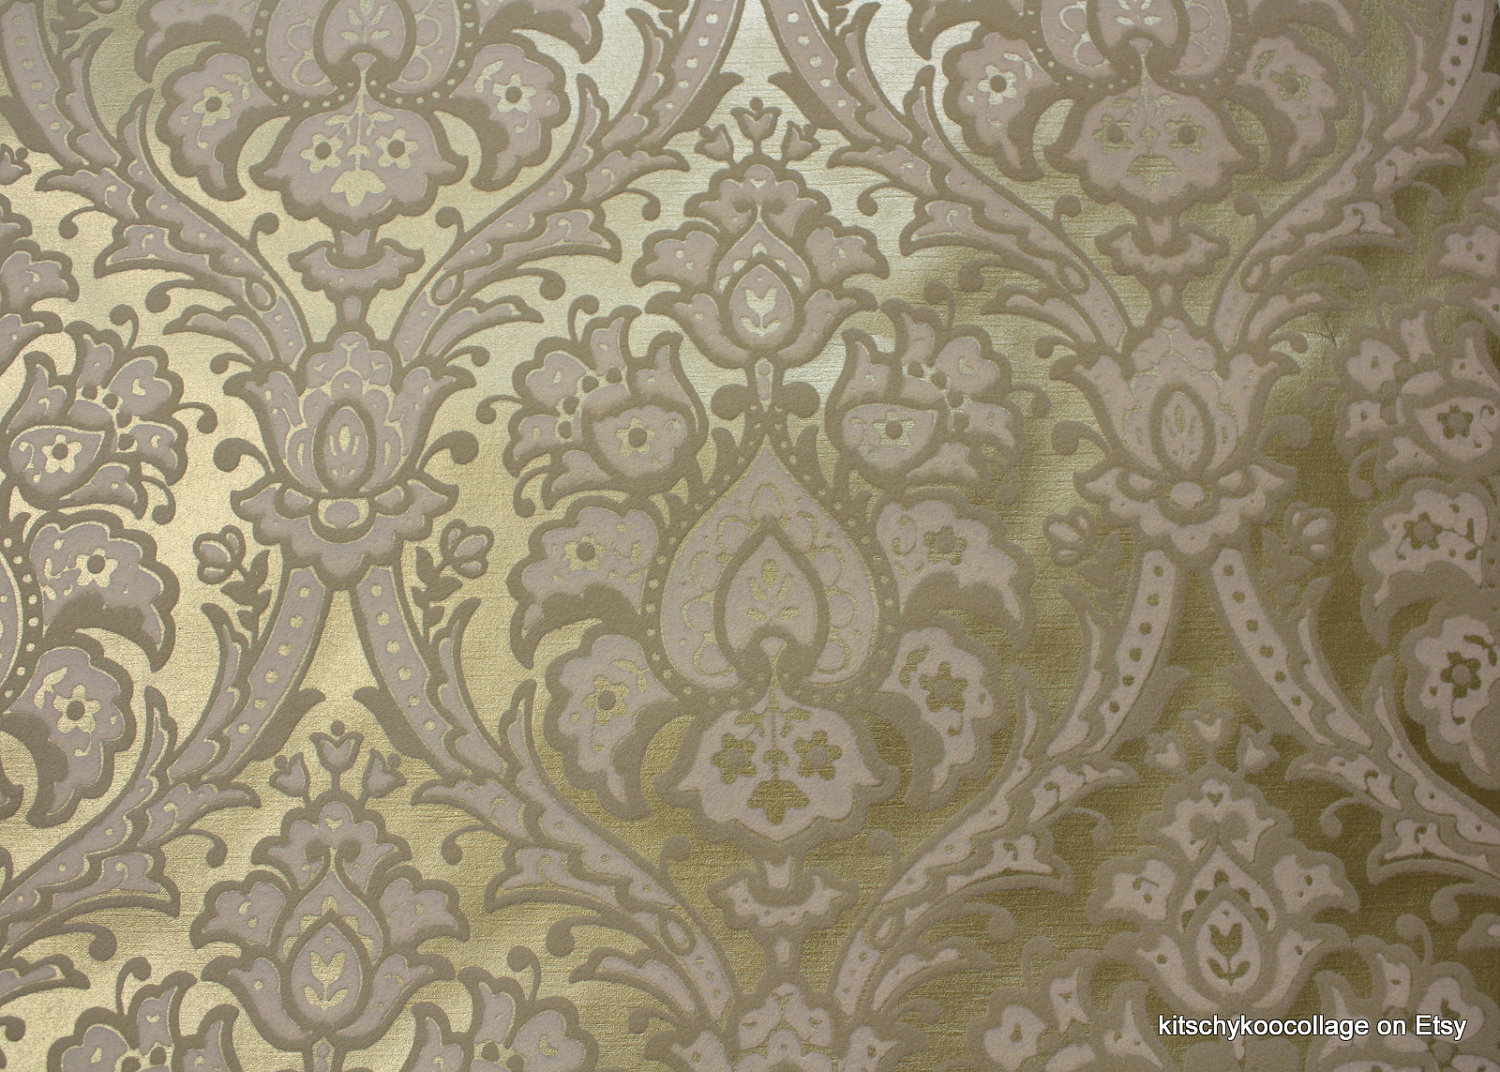 1970s Vintage Flocked Wallpaper Metallic Gold and white flocked 1500x1072